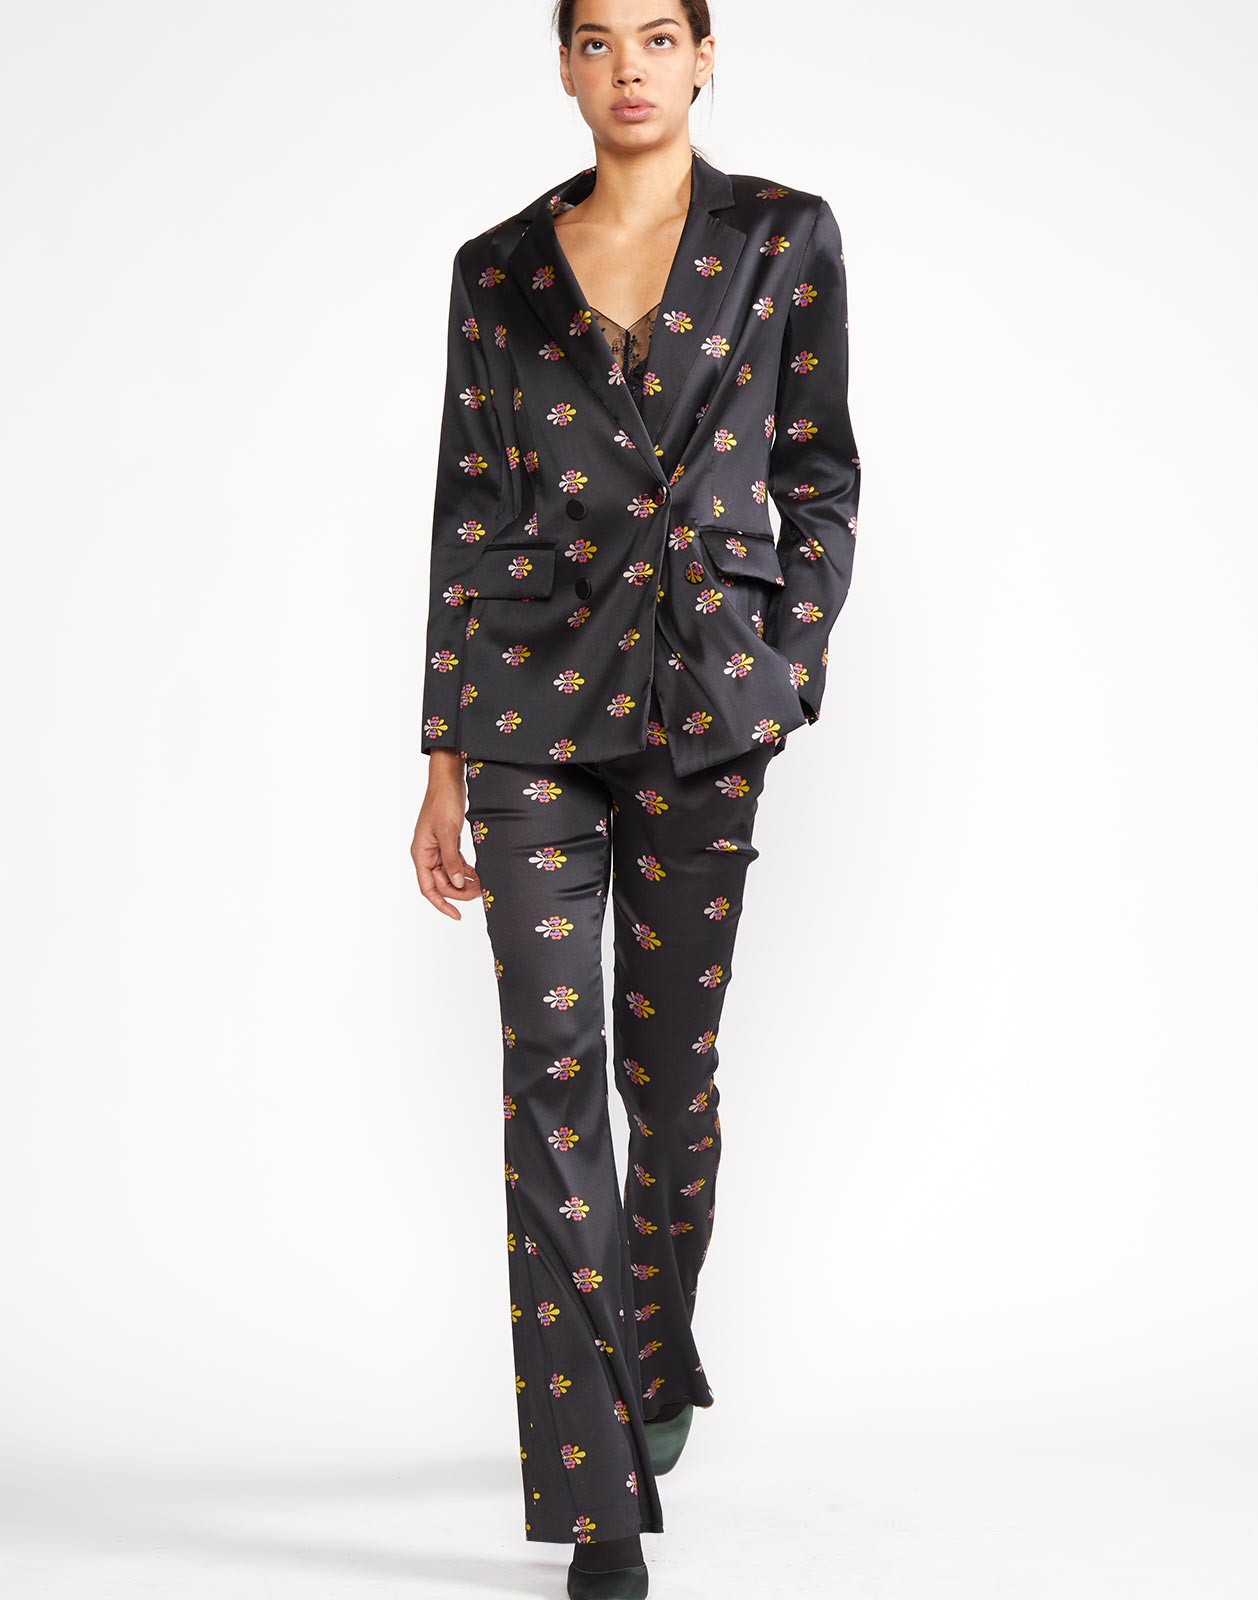 Alternate view of the Nathalie Jacquard Trouser with woven floral motif